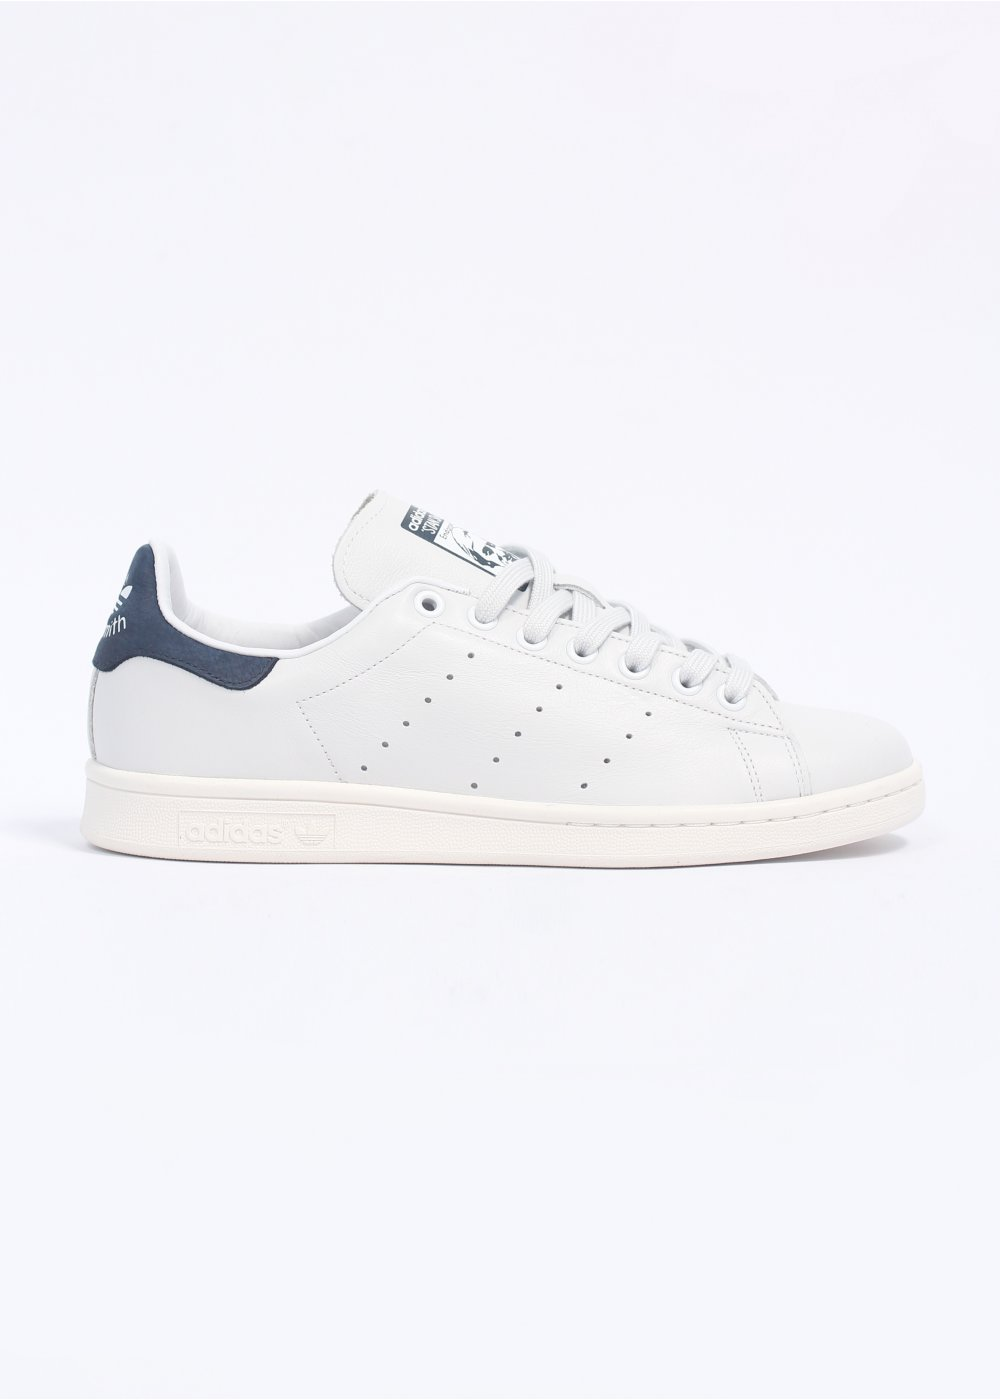 Stan Smith Trainers - Neo White / Navy